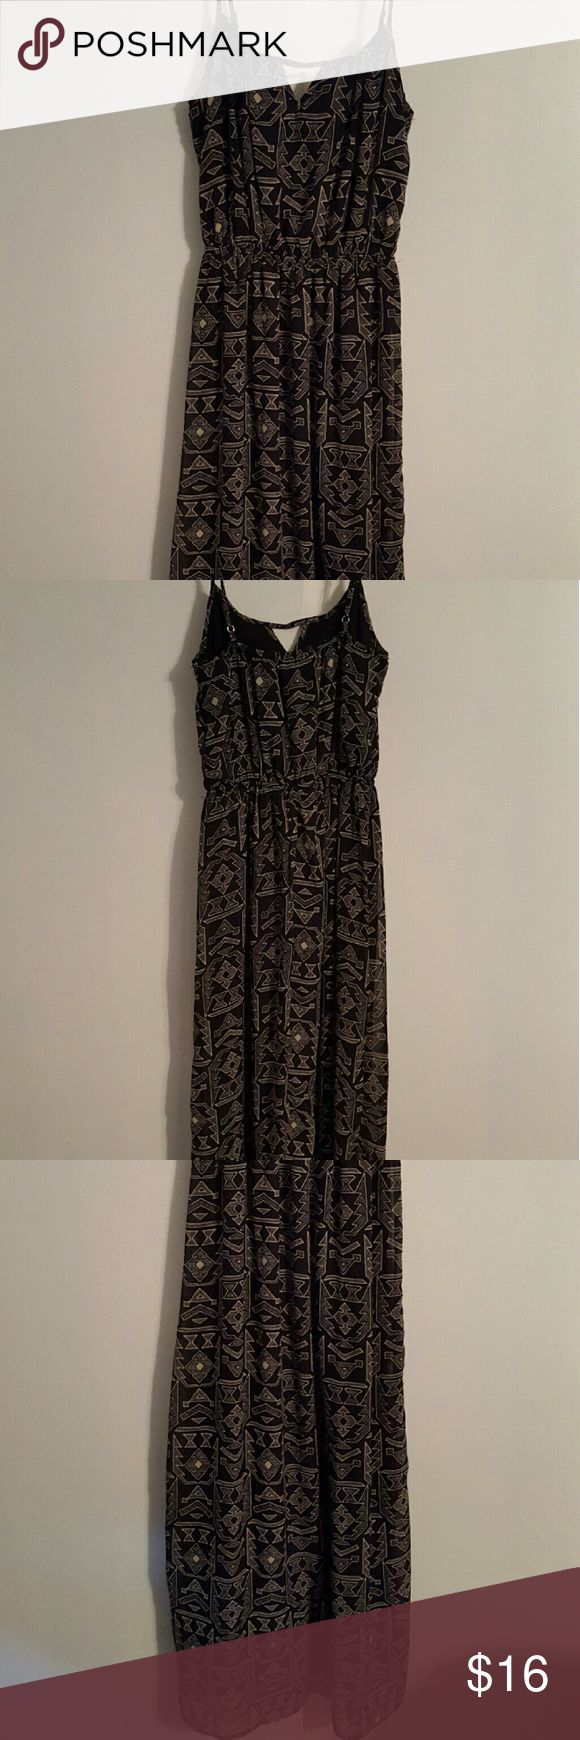 Aztec Maxi Dress Black and Tan Aztec Maxi Dress one clothing Dresses Maxi